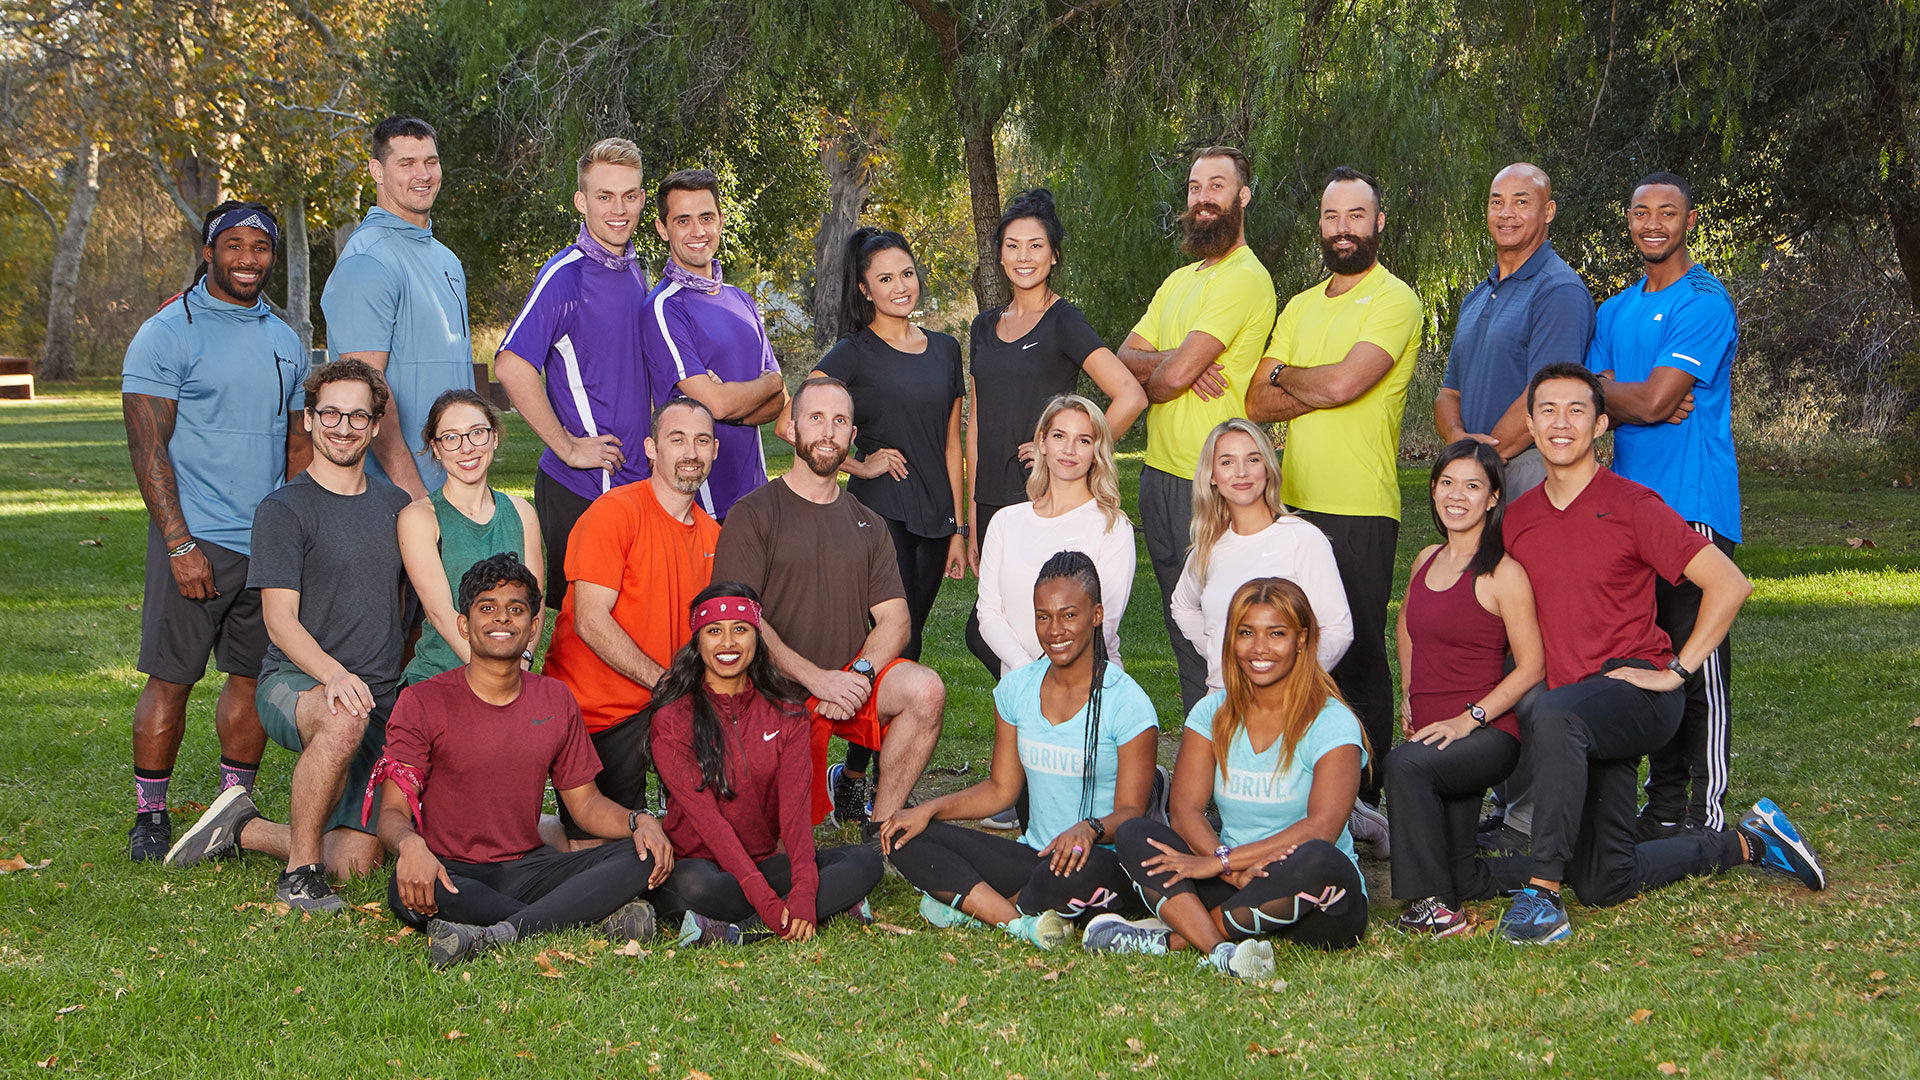 Who S In The Cast Of The Amazing Race Season 32 The Amazing Race Photos Cbs Com